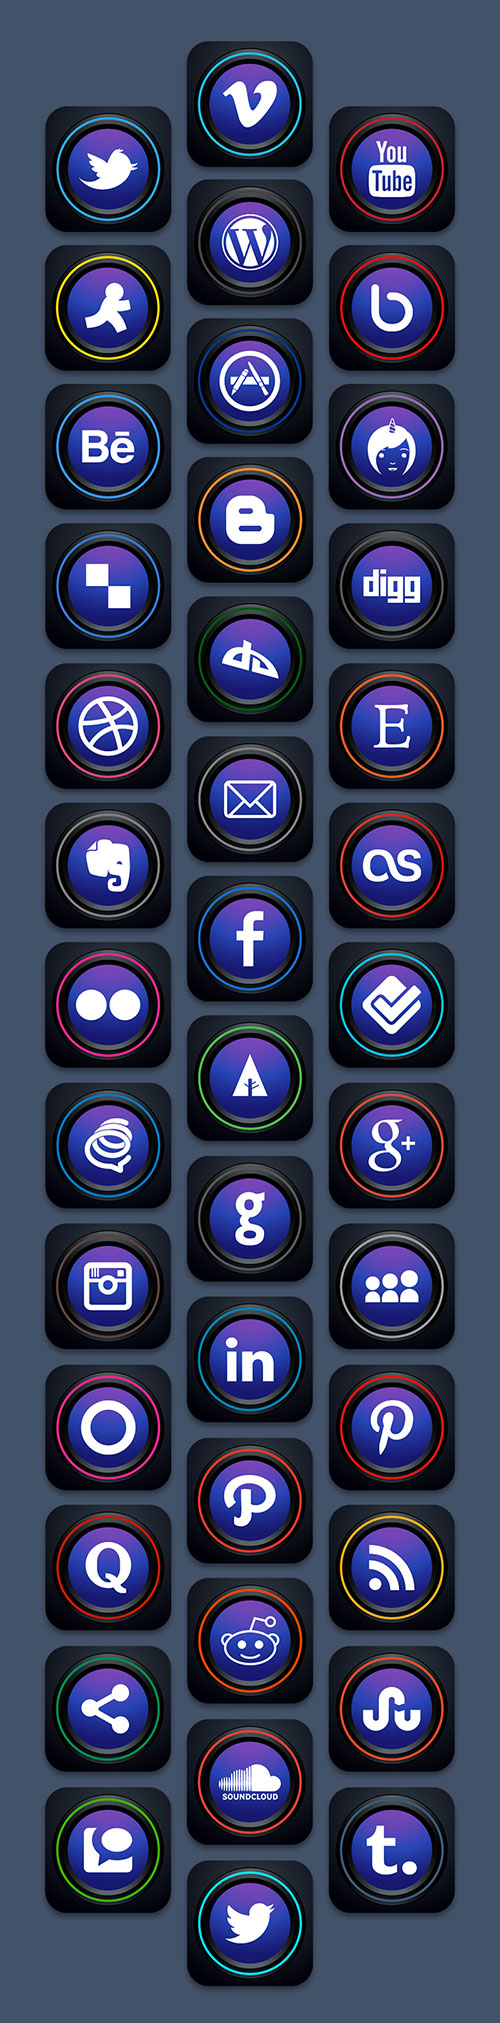 free-modern-stylish-social-media-icons-ai